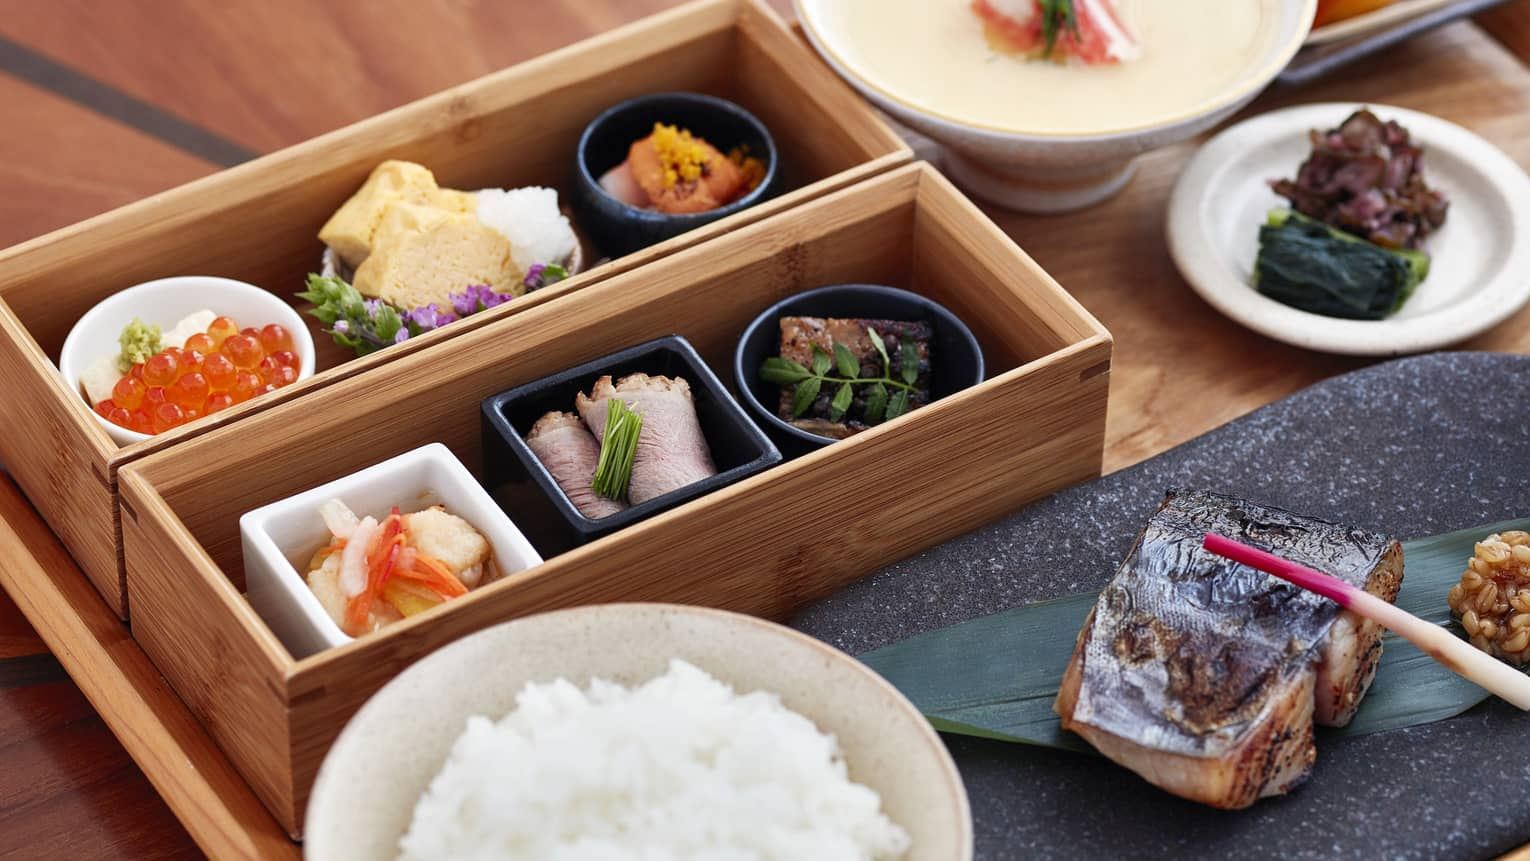 A close up of a Japanese Breakfast on a natural wooden tray – sushi, chopsticks, sashimi, caviar and peaches